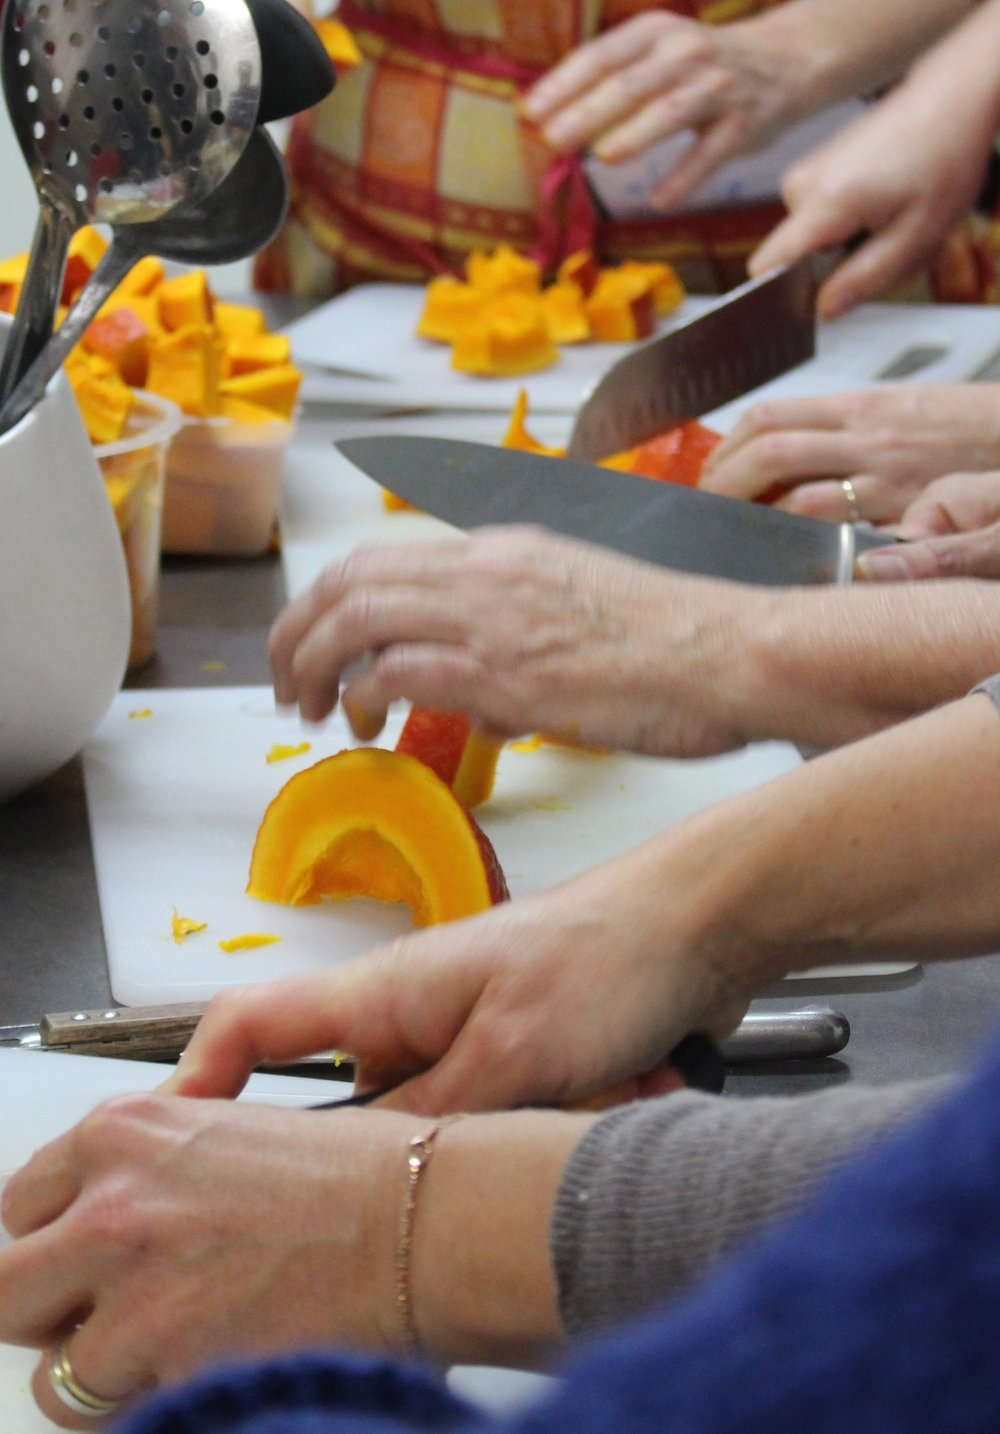 ayurveda-cuisine-cours-ateliers-stages-cookmegreen.jpg